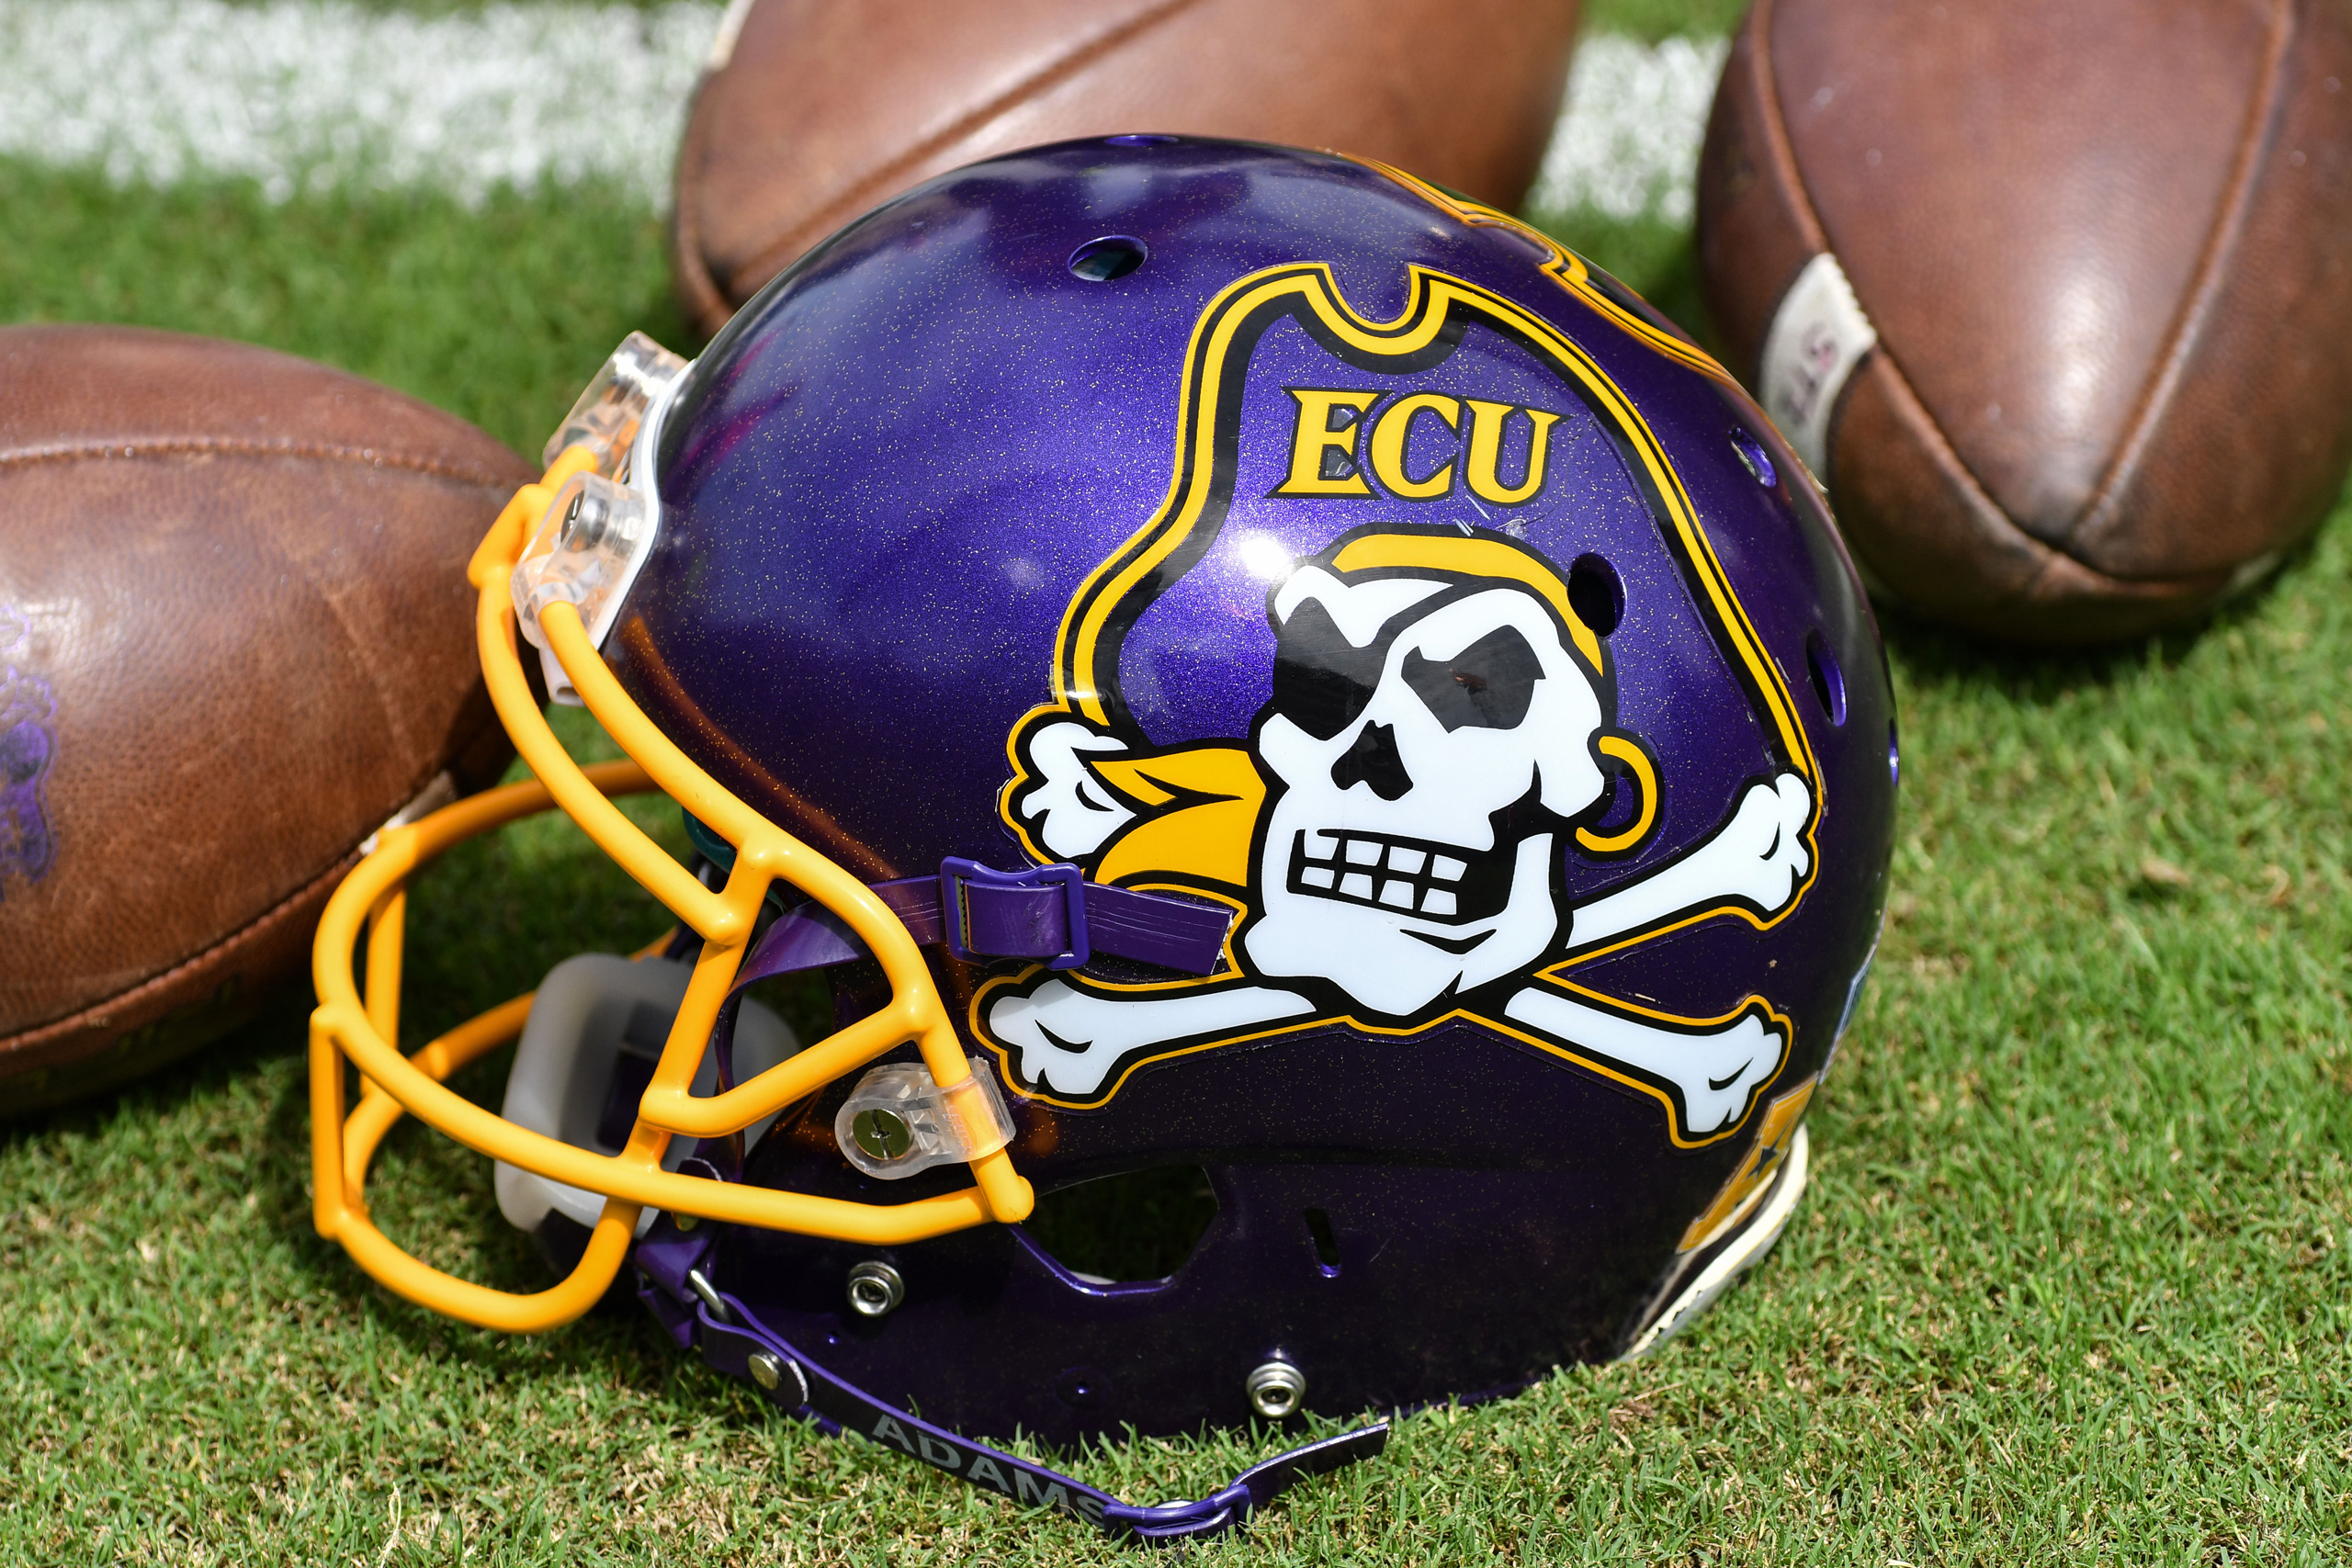 East Carolina helmet in a game between the East Carolina Pirates and the Central Florida Knights at Dowdy-Ficklen Stadium in Greenville, N.C., on Oct. 1, 2016.